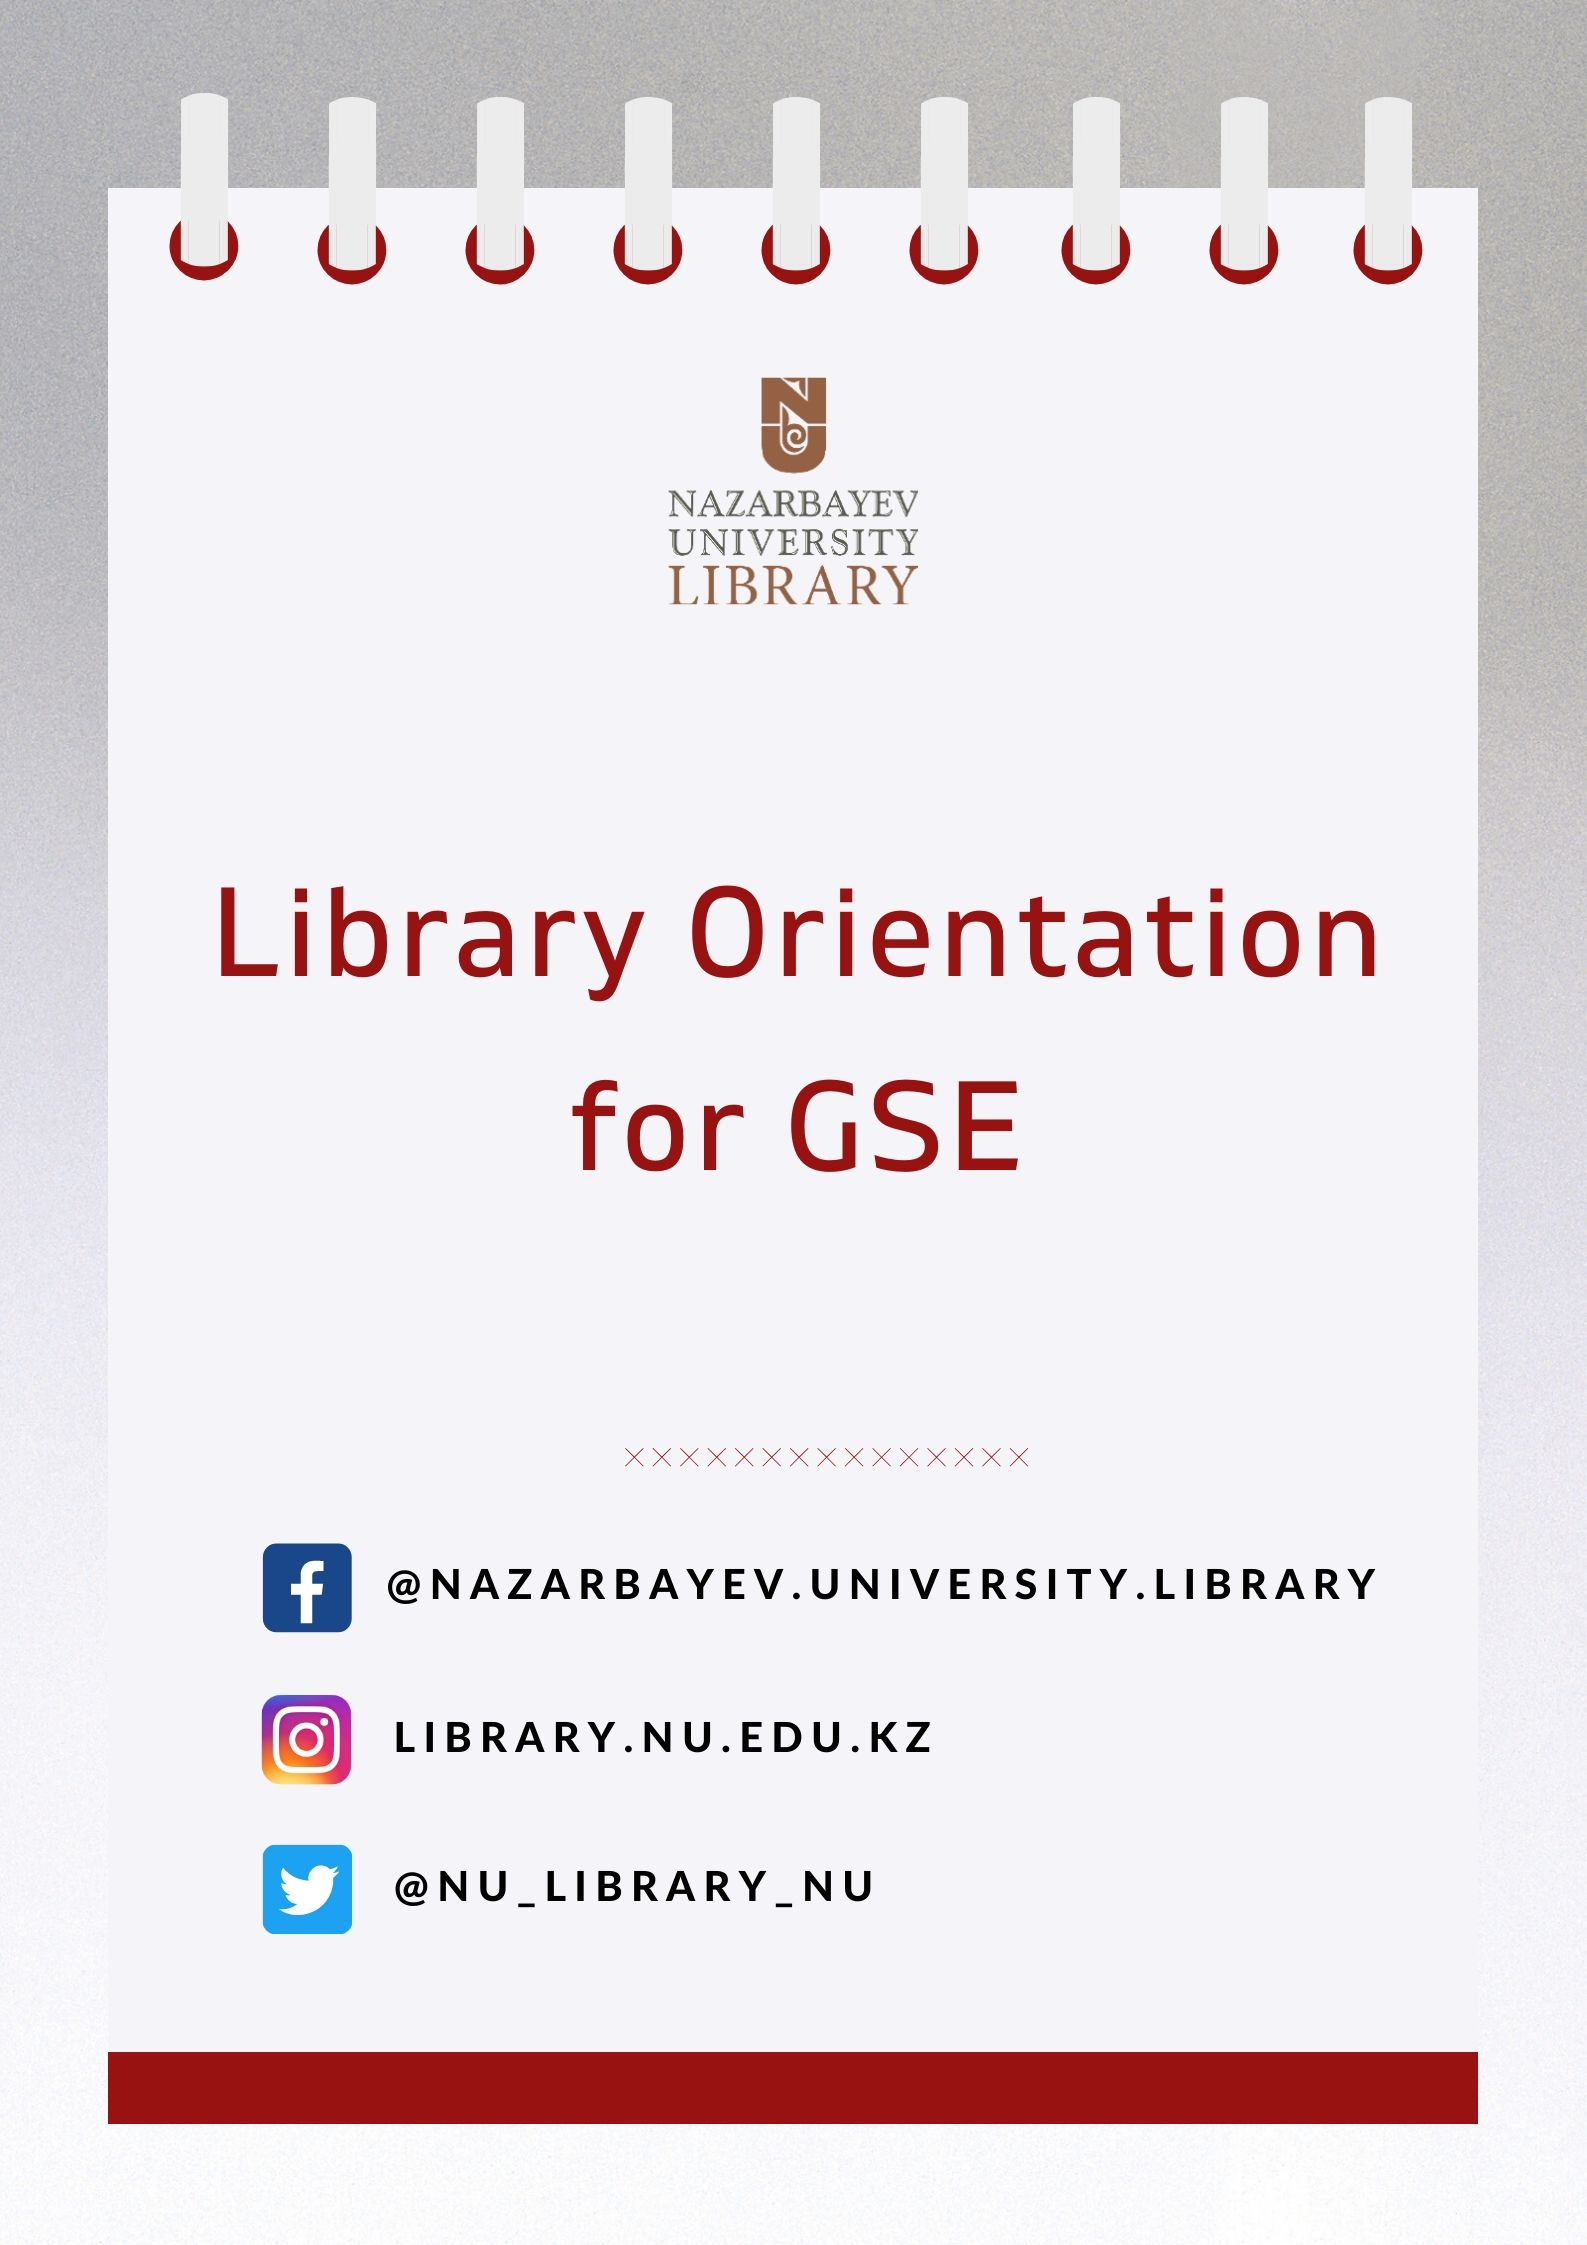 [GSE] Academic Orientation: Library Services, Programs and Resources & Searching for Information